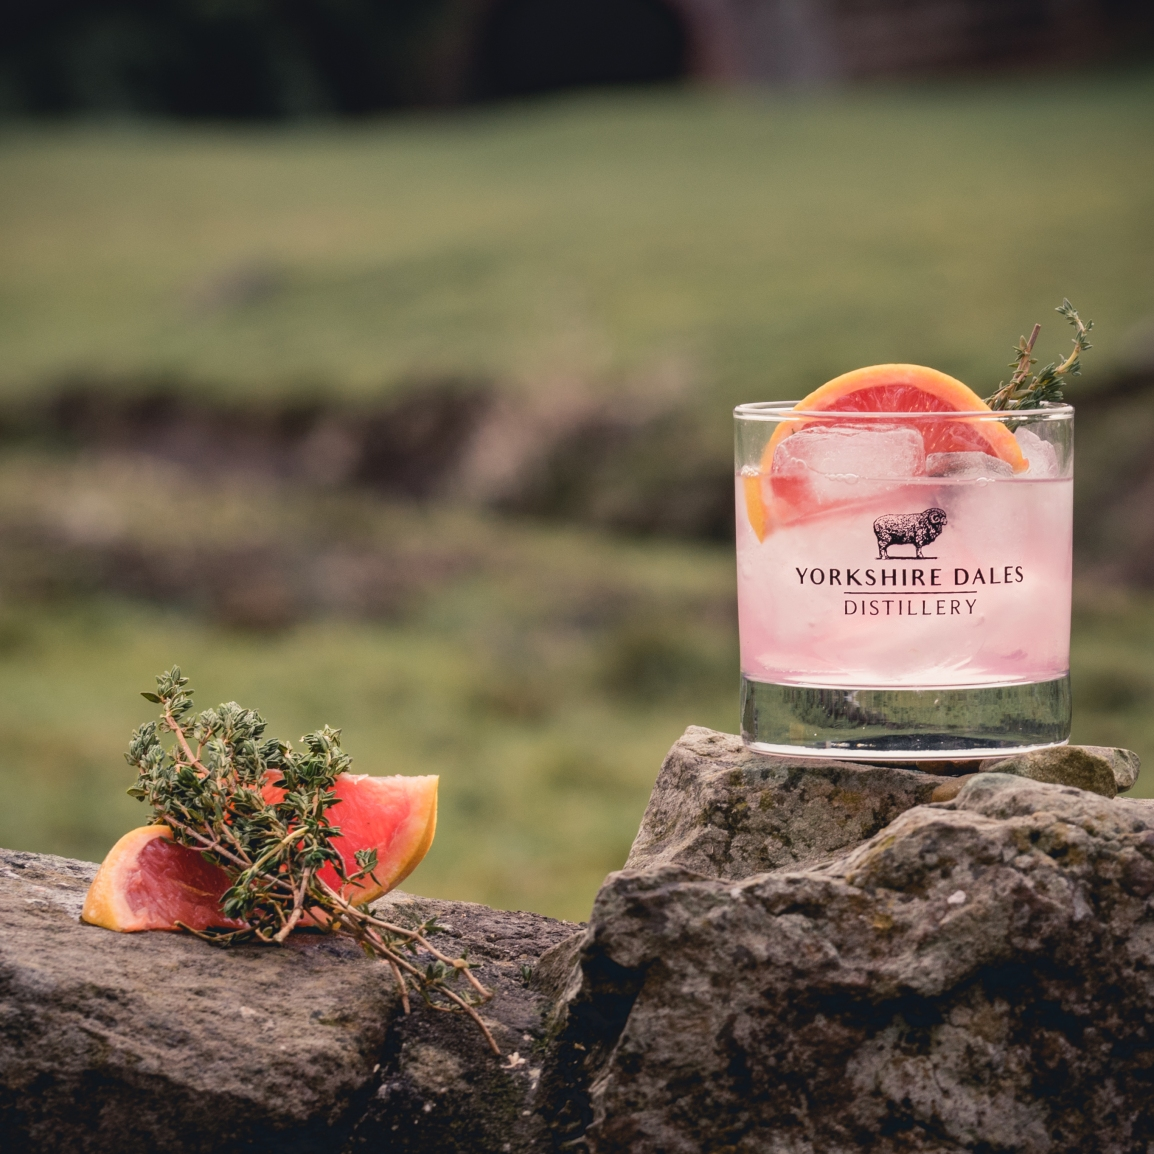 A bold new distillery, a bold new venture from the Yorkshire Dales- with not a flap cap in sight!